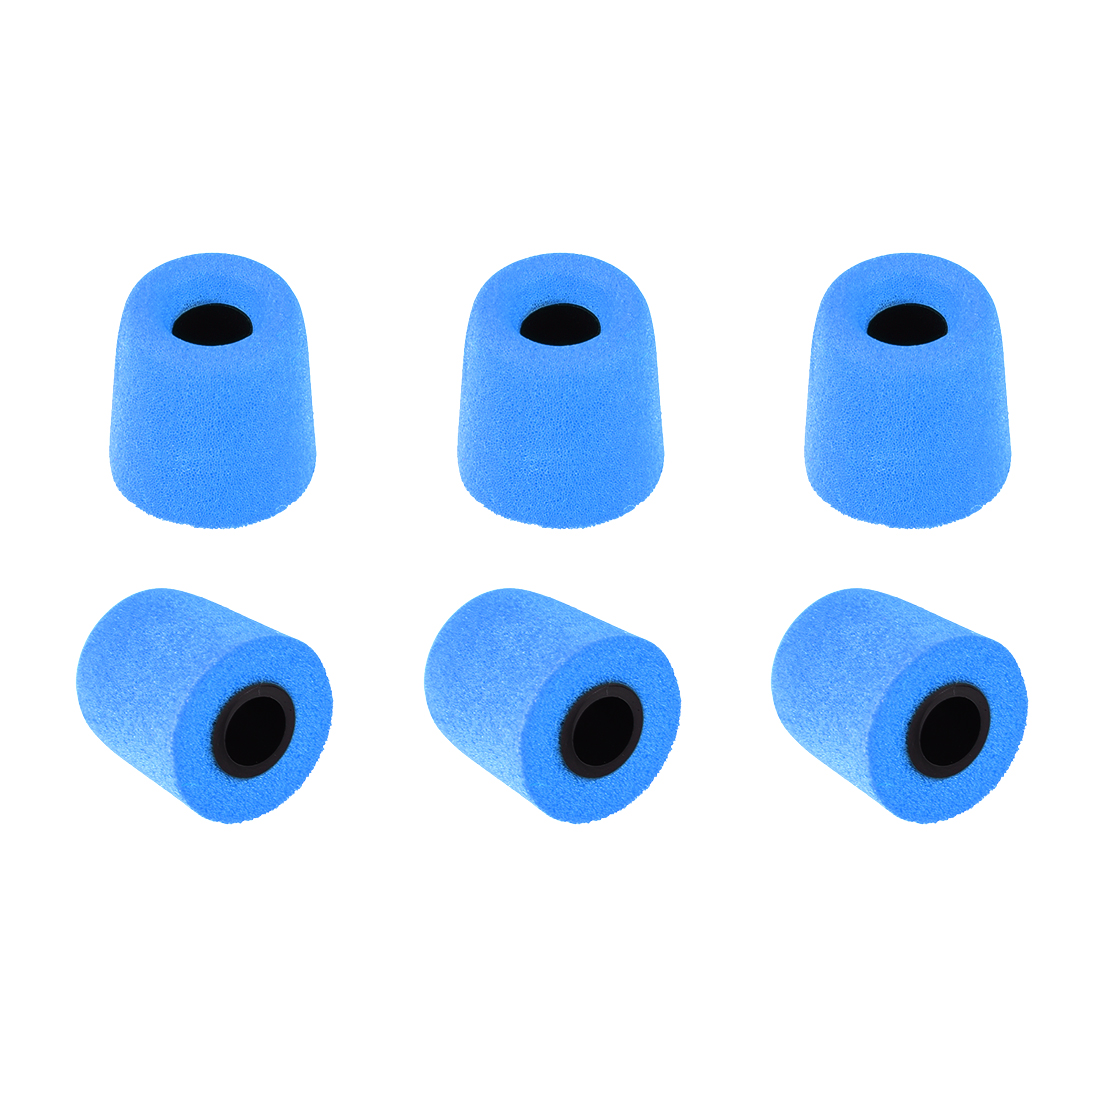 Memory Foam Earbuds Earphone Noise Reducing Fit for 4-4.7mm Nozzle Blue S 6pcs